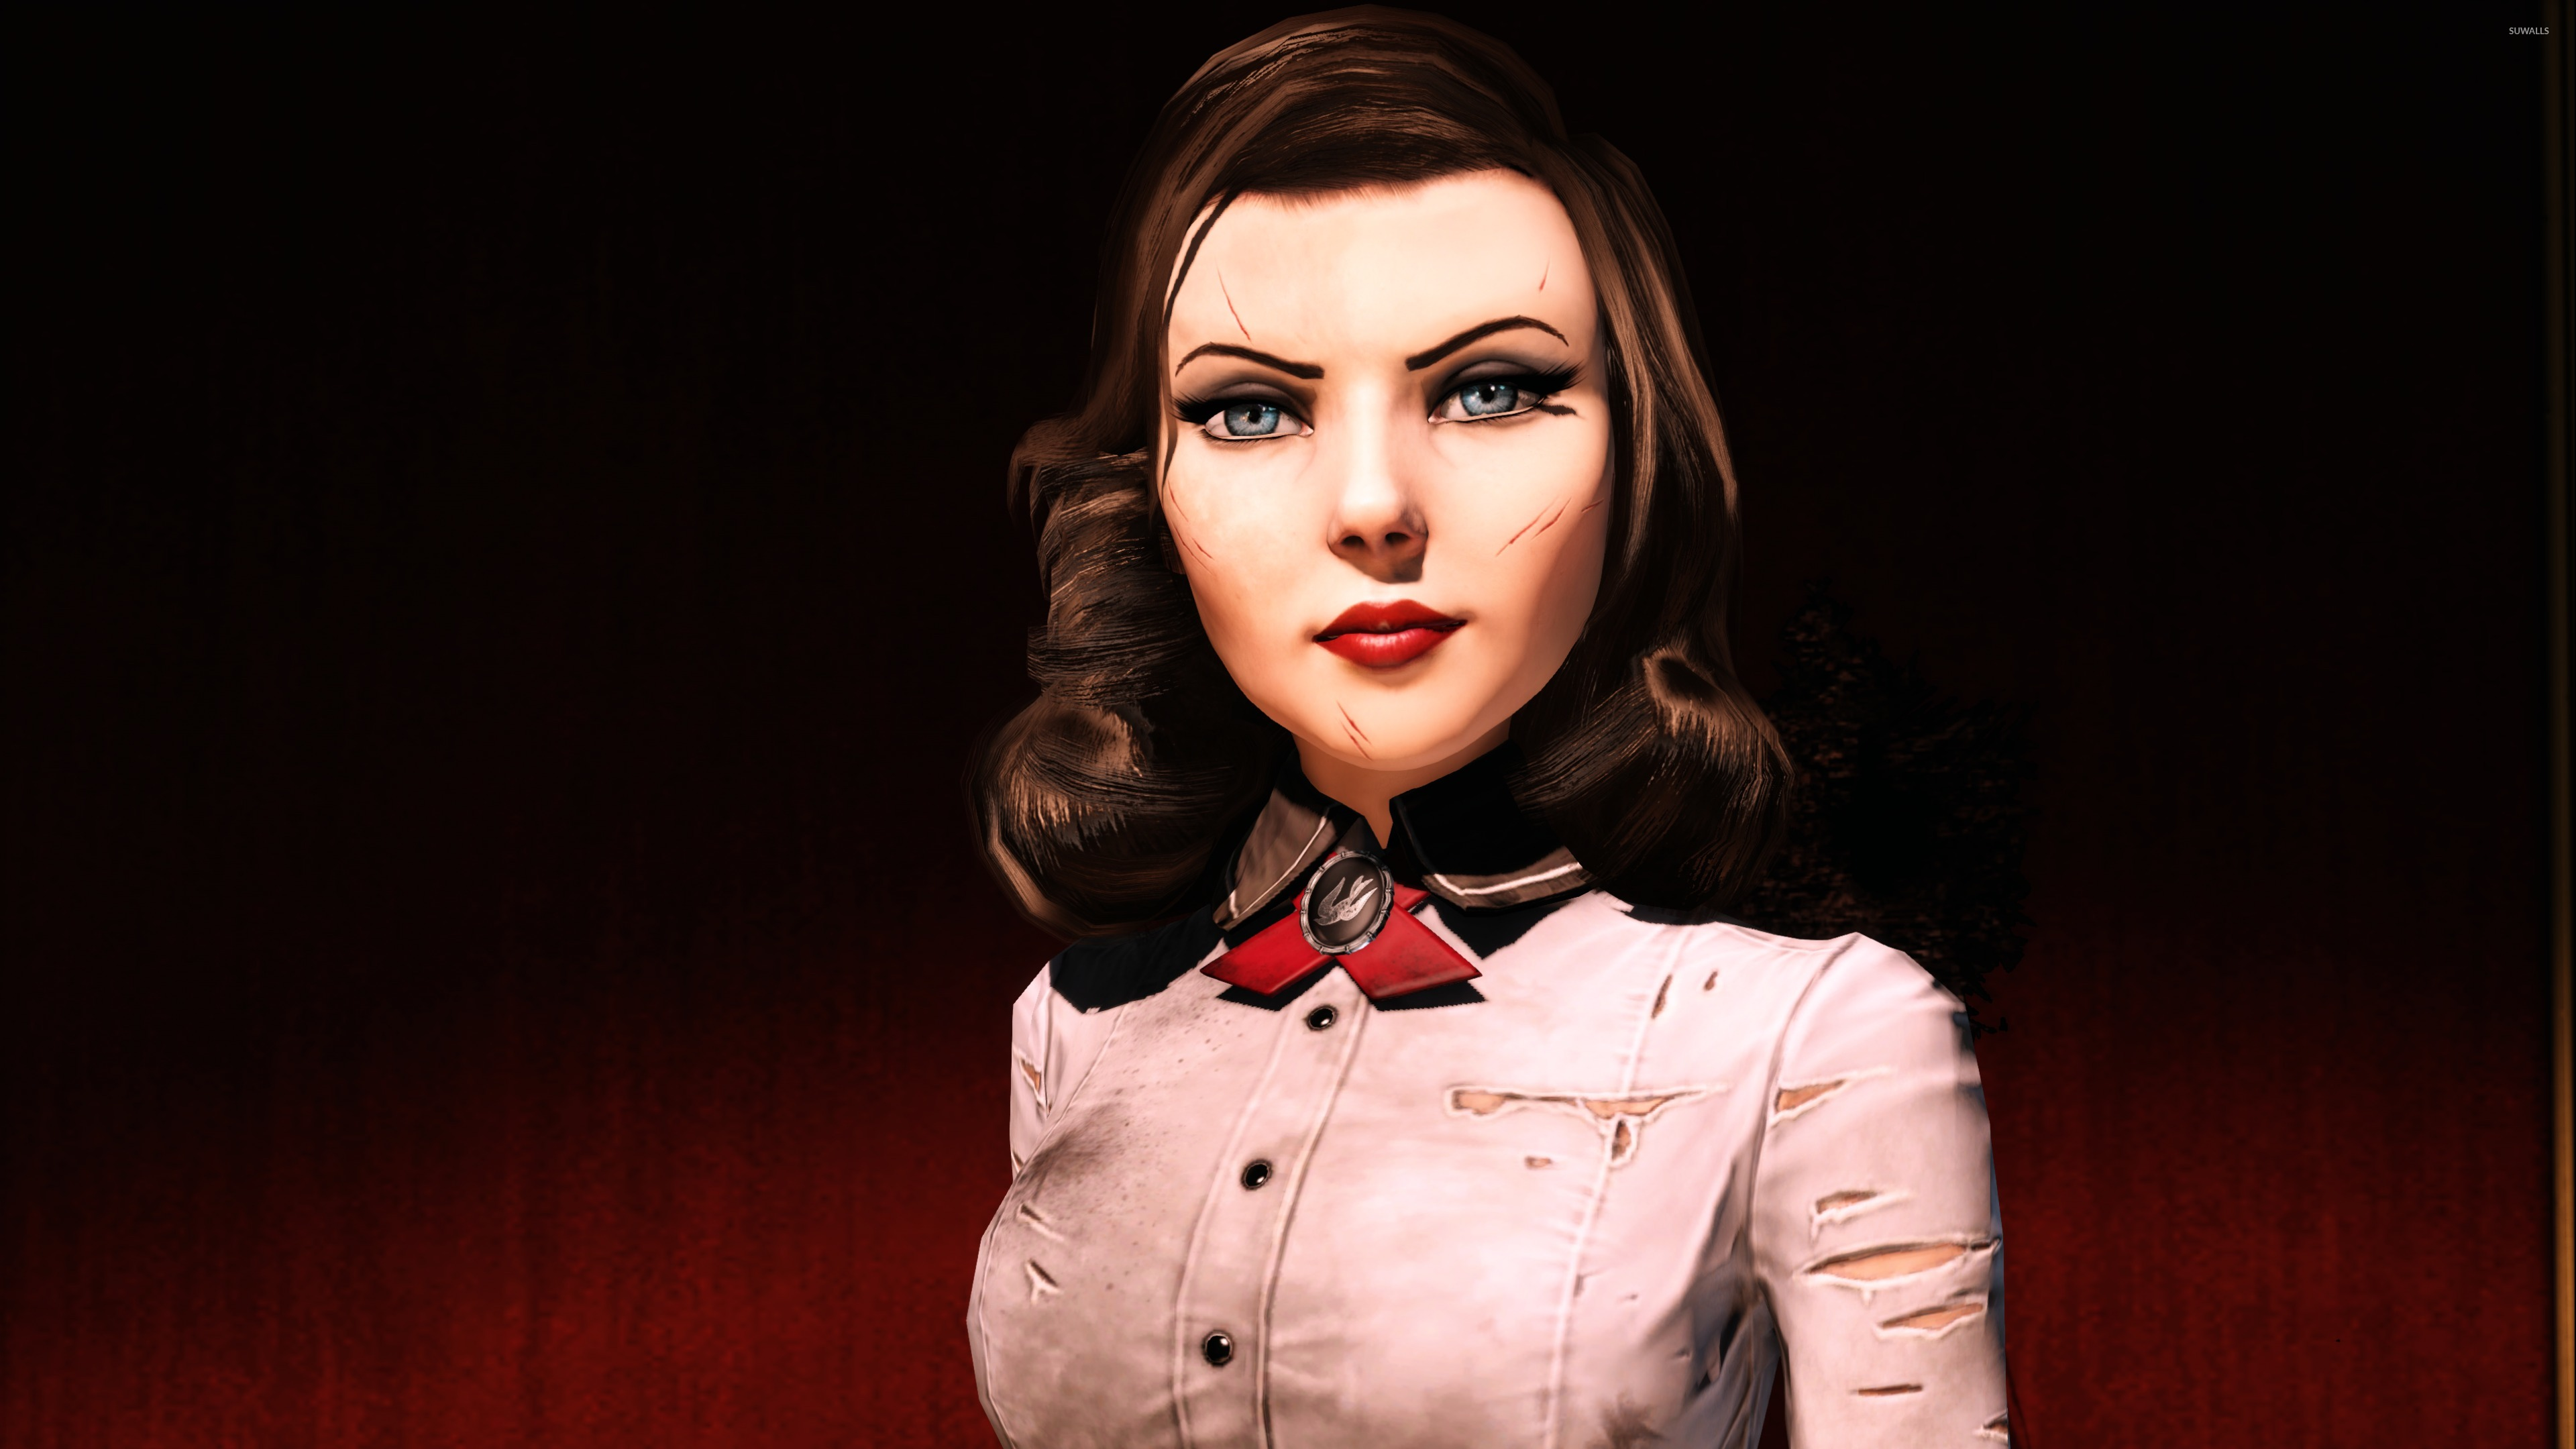 Bioshock infinite burial at sea elizabeth wallpaper.